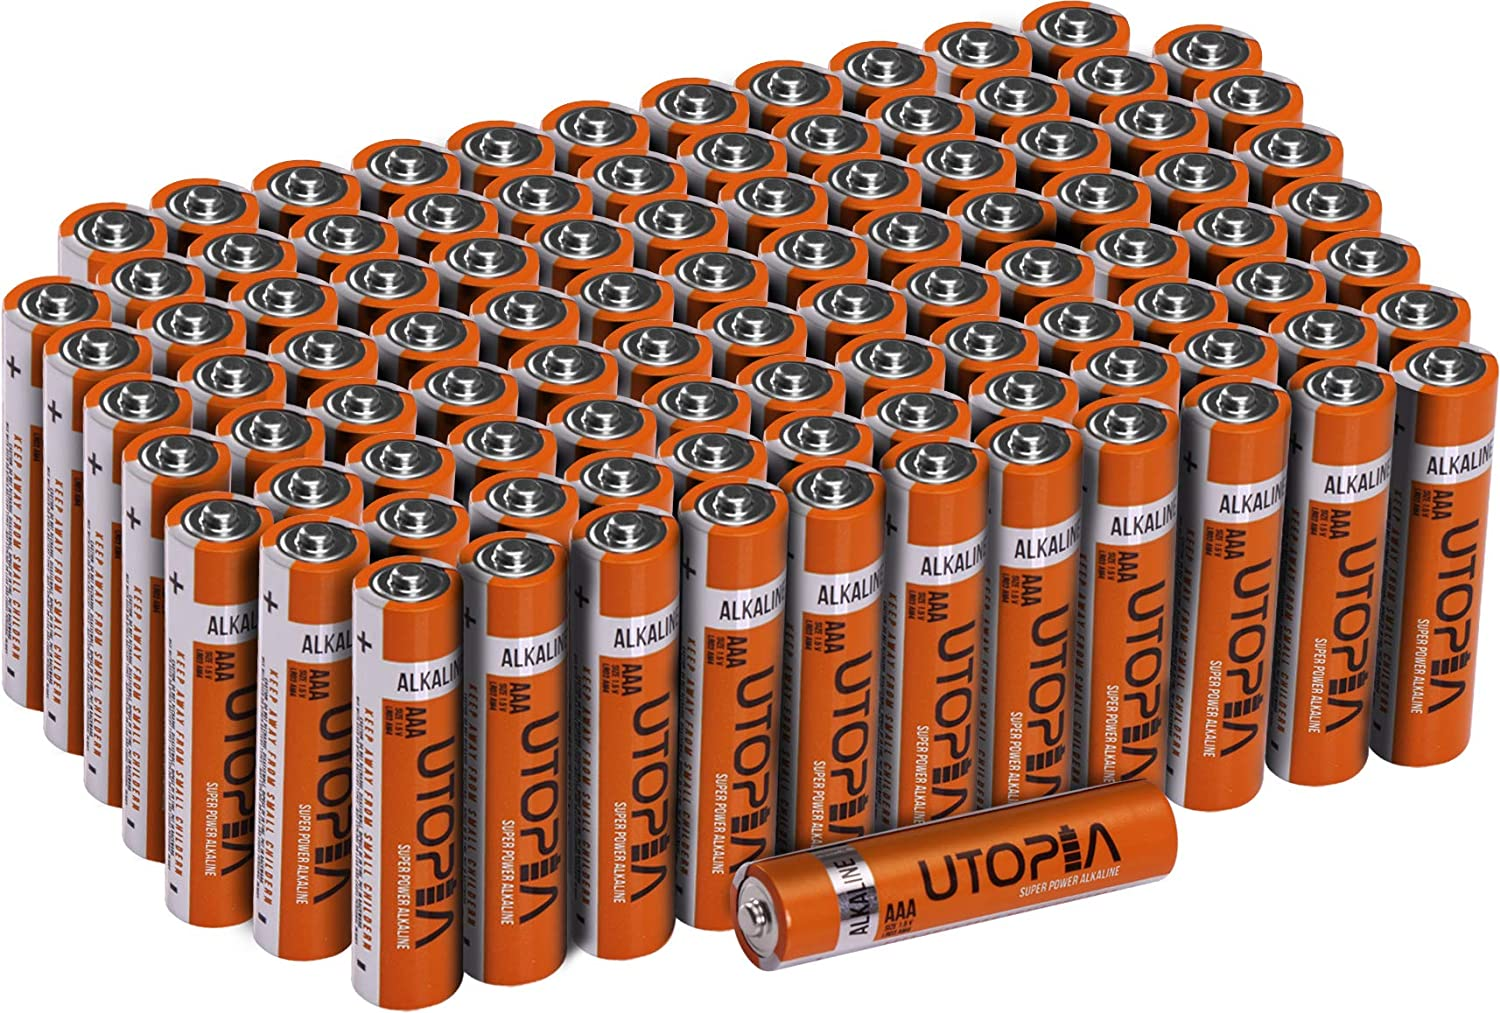 Utopia Home Alkali Battery - Long Lasting Performance - Perfect for Daily Use (AAA - Pack of 100) UH0556